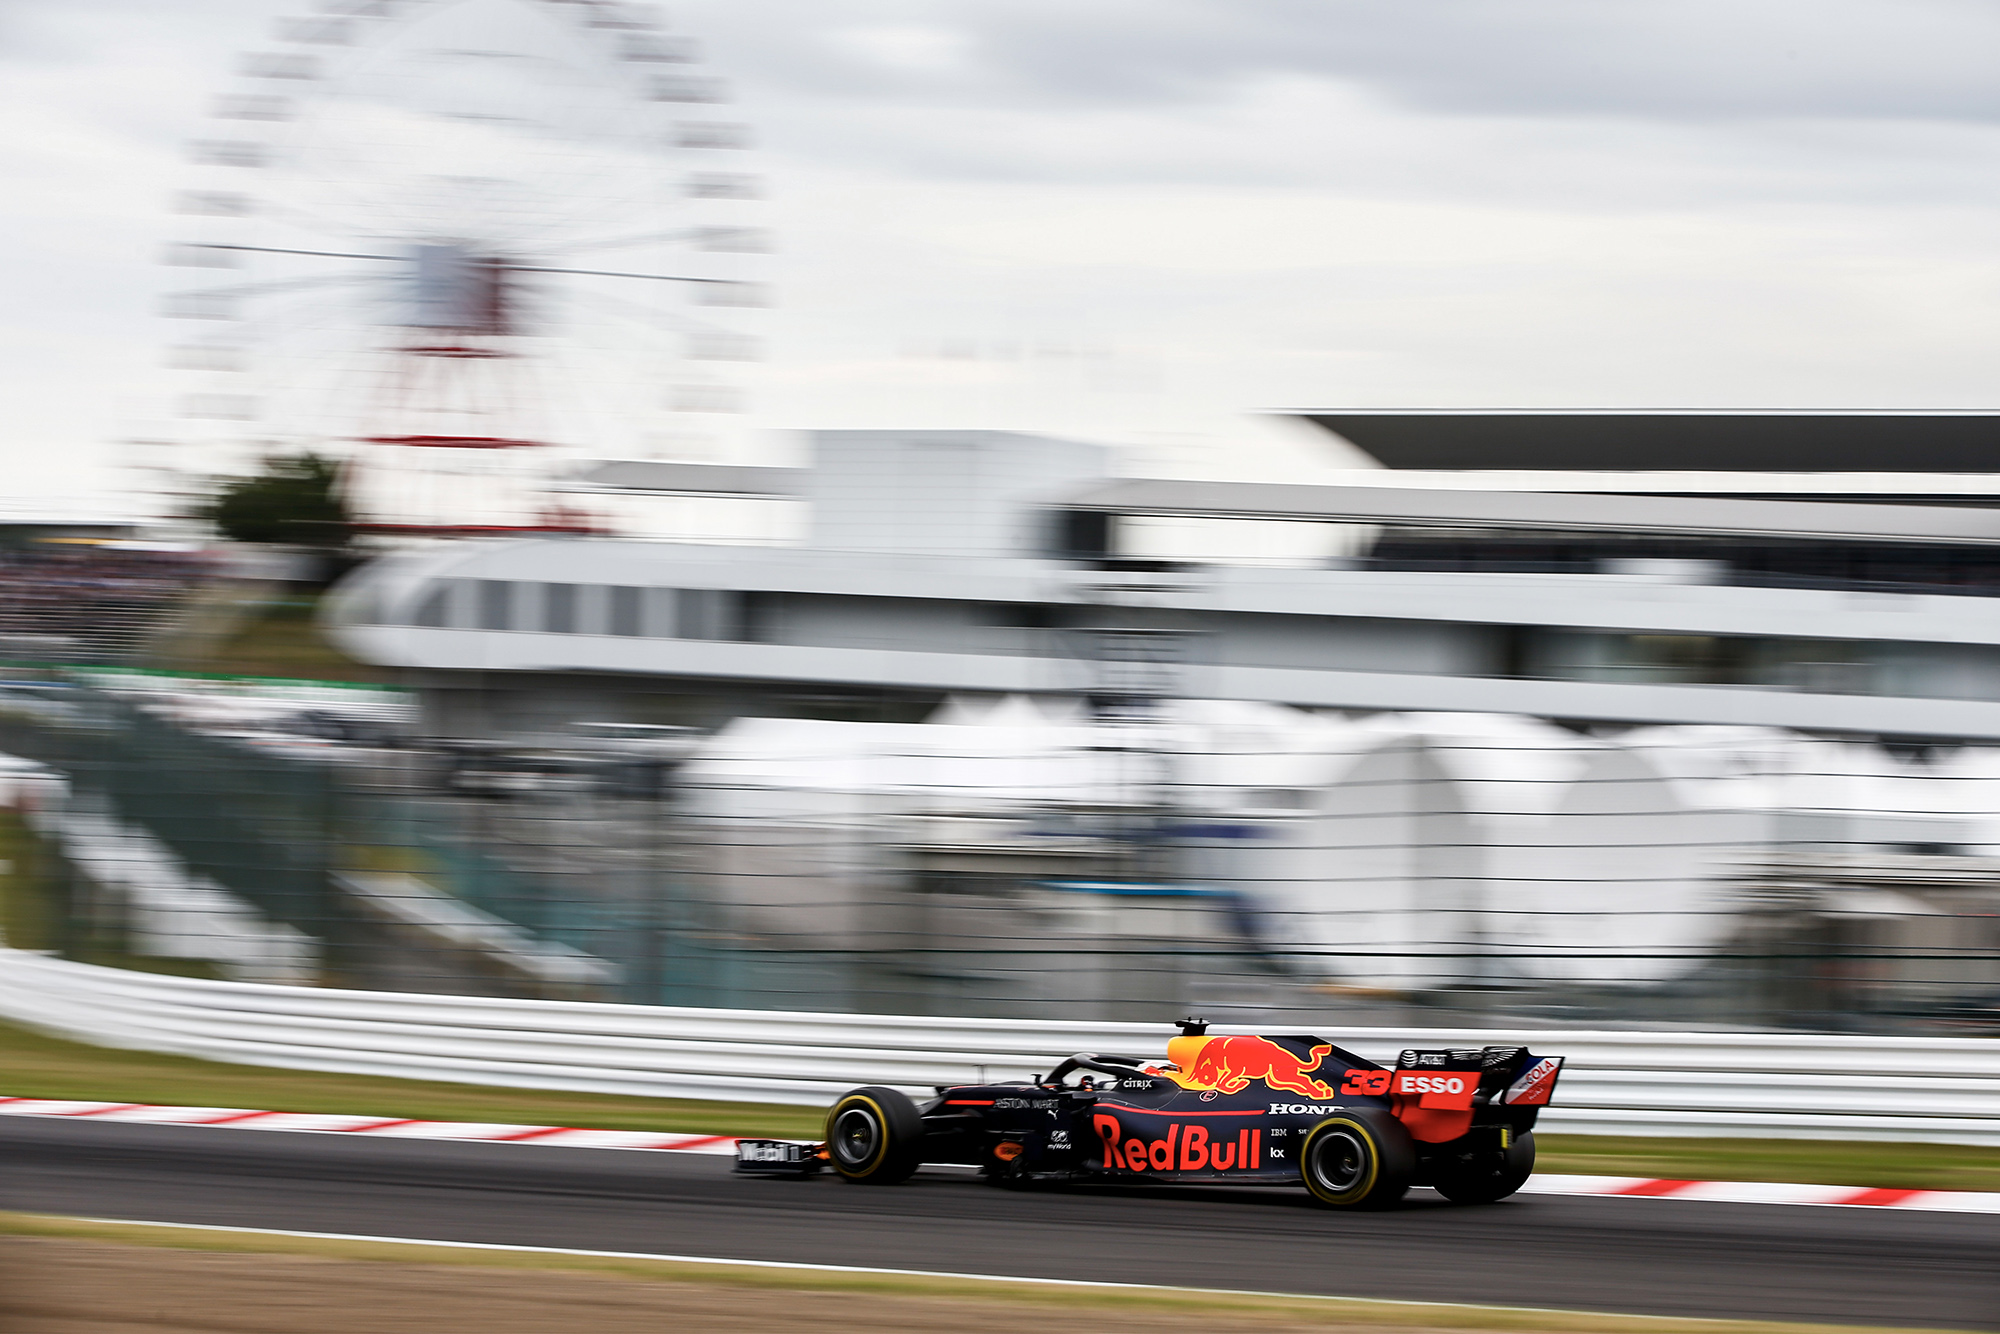 MPH: Could Honda's F1 future hinge on Verstappen victory in Japan?